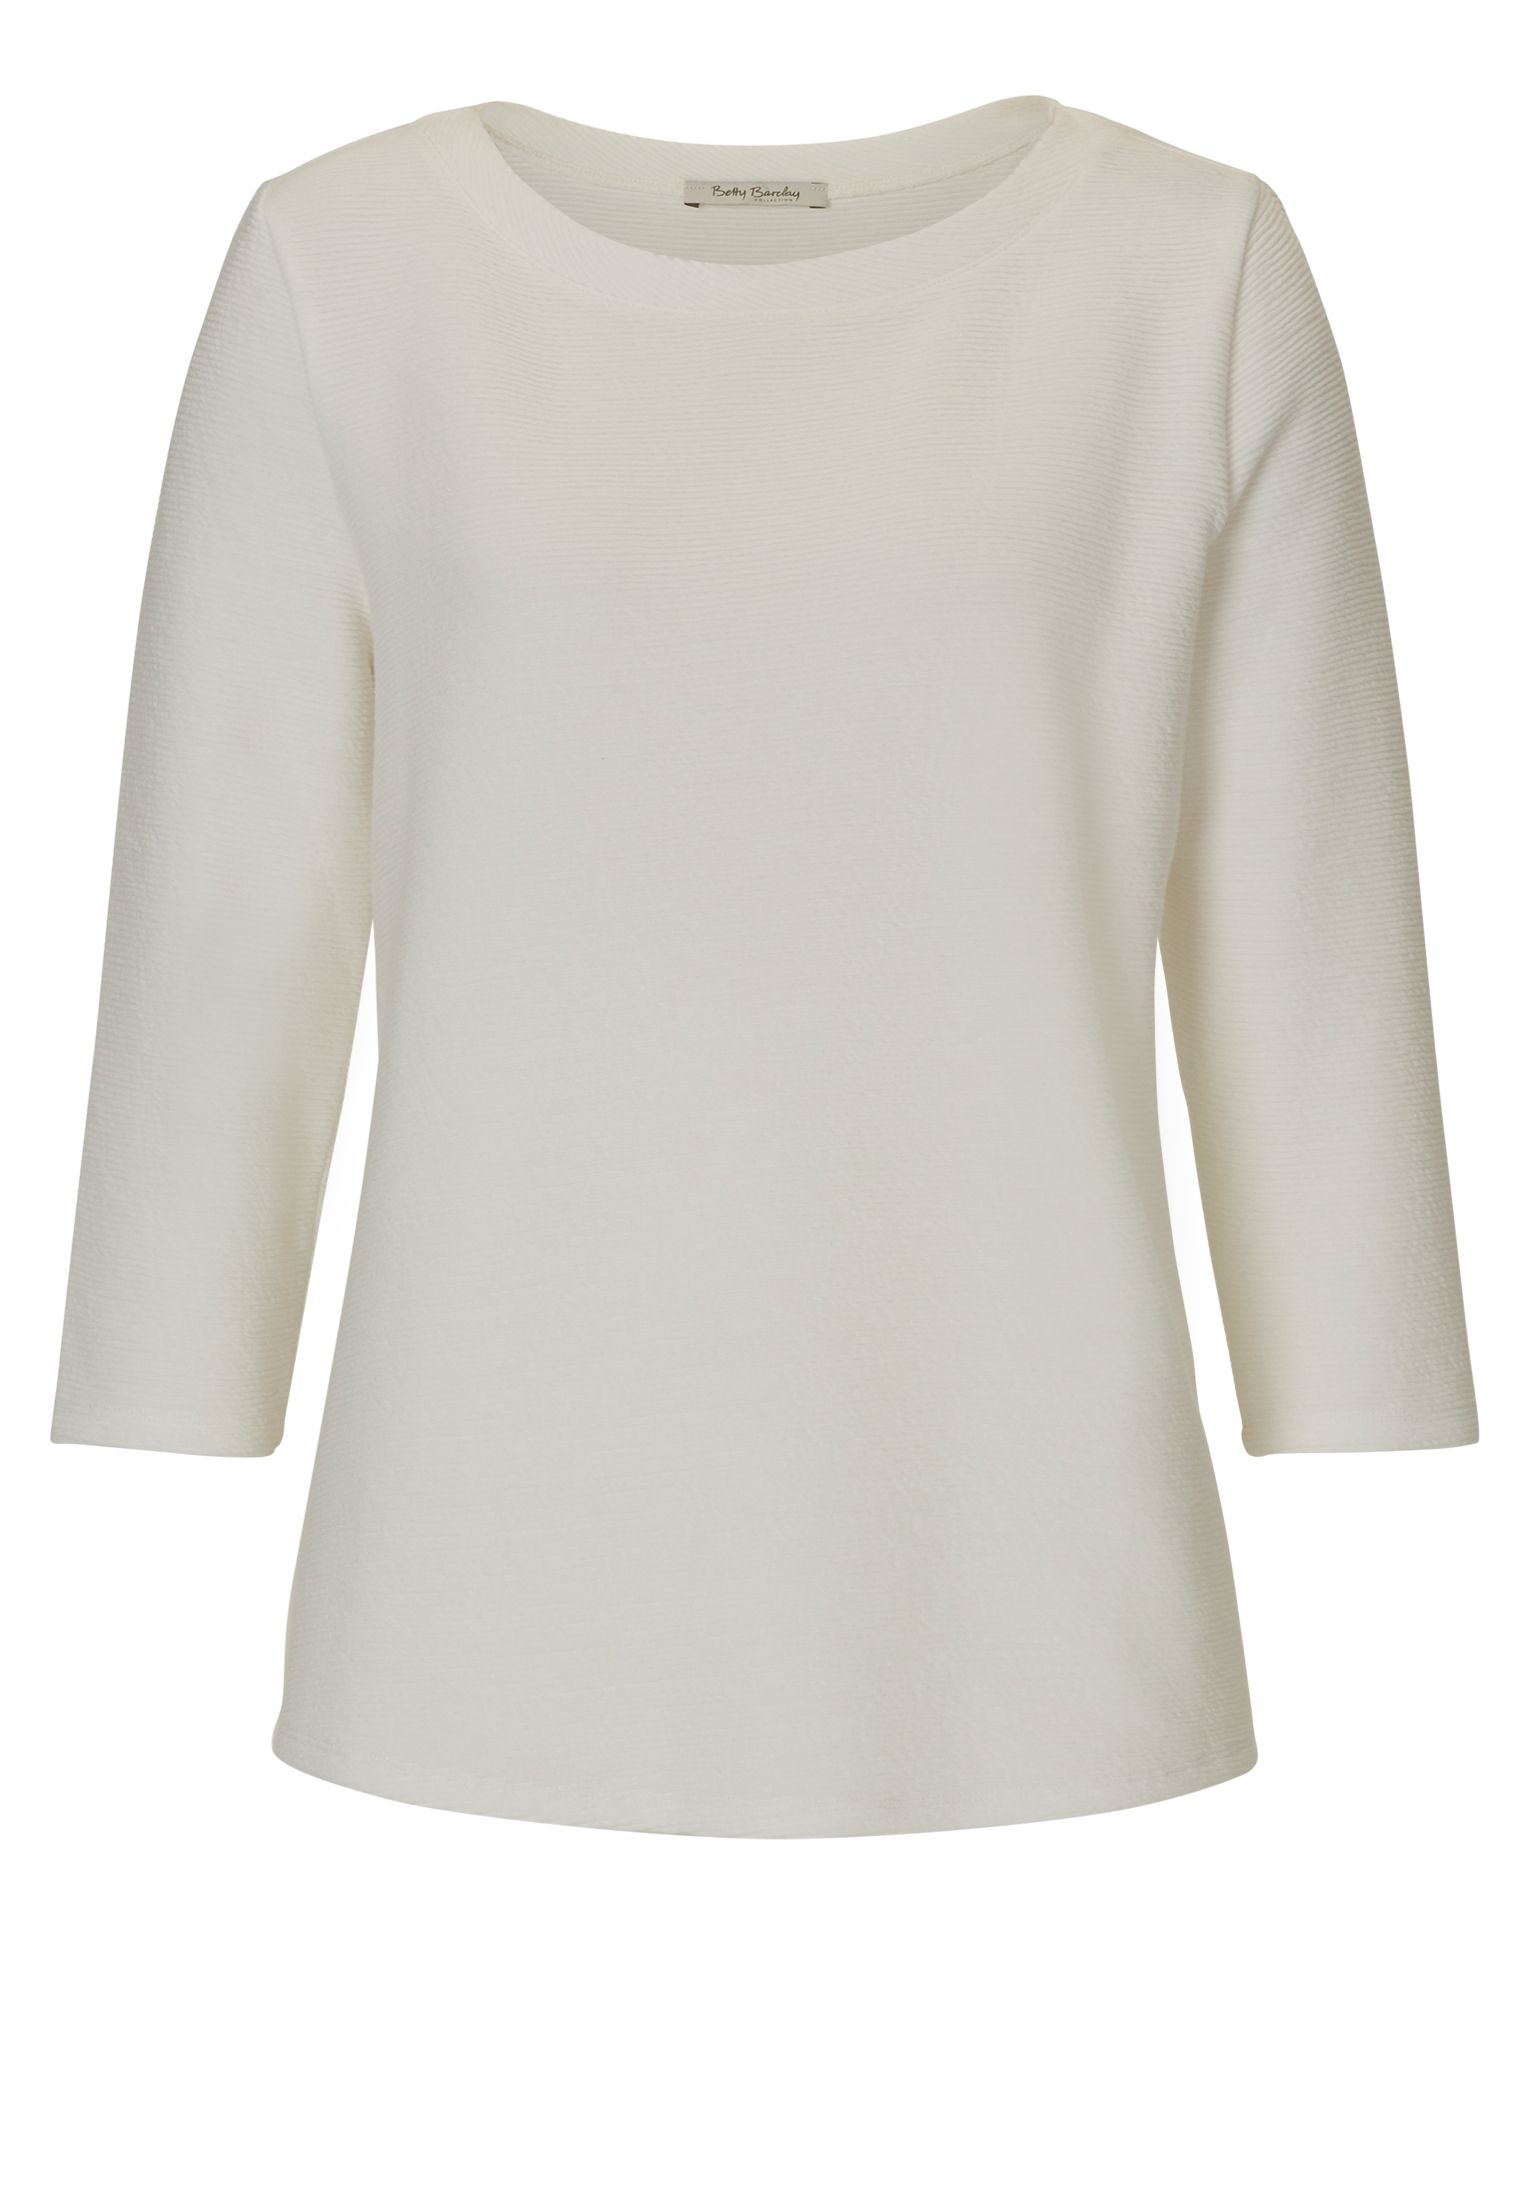 Betty Barclay Bell Sleeved Top, Off White